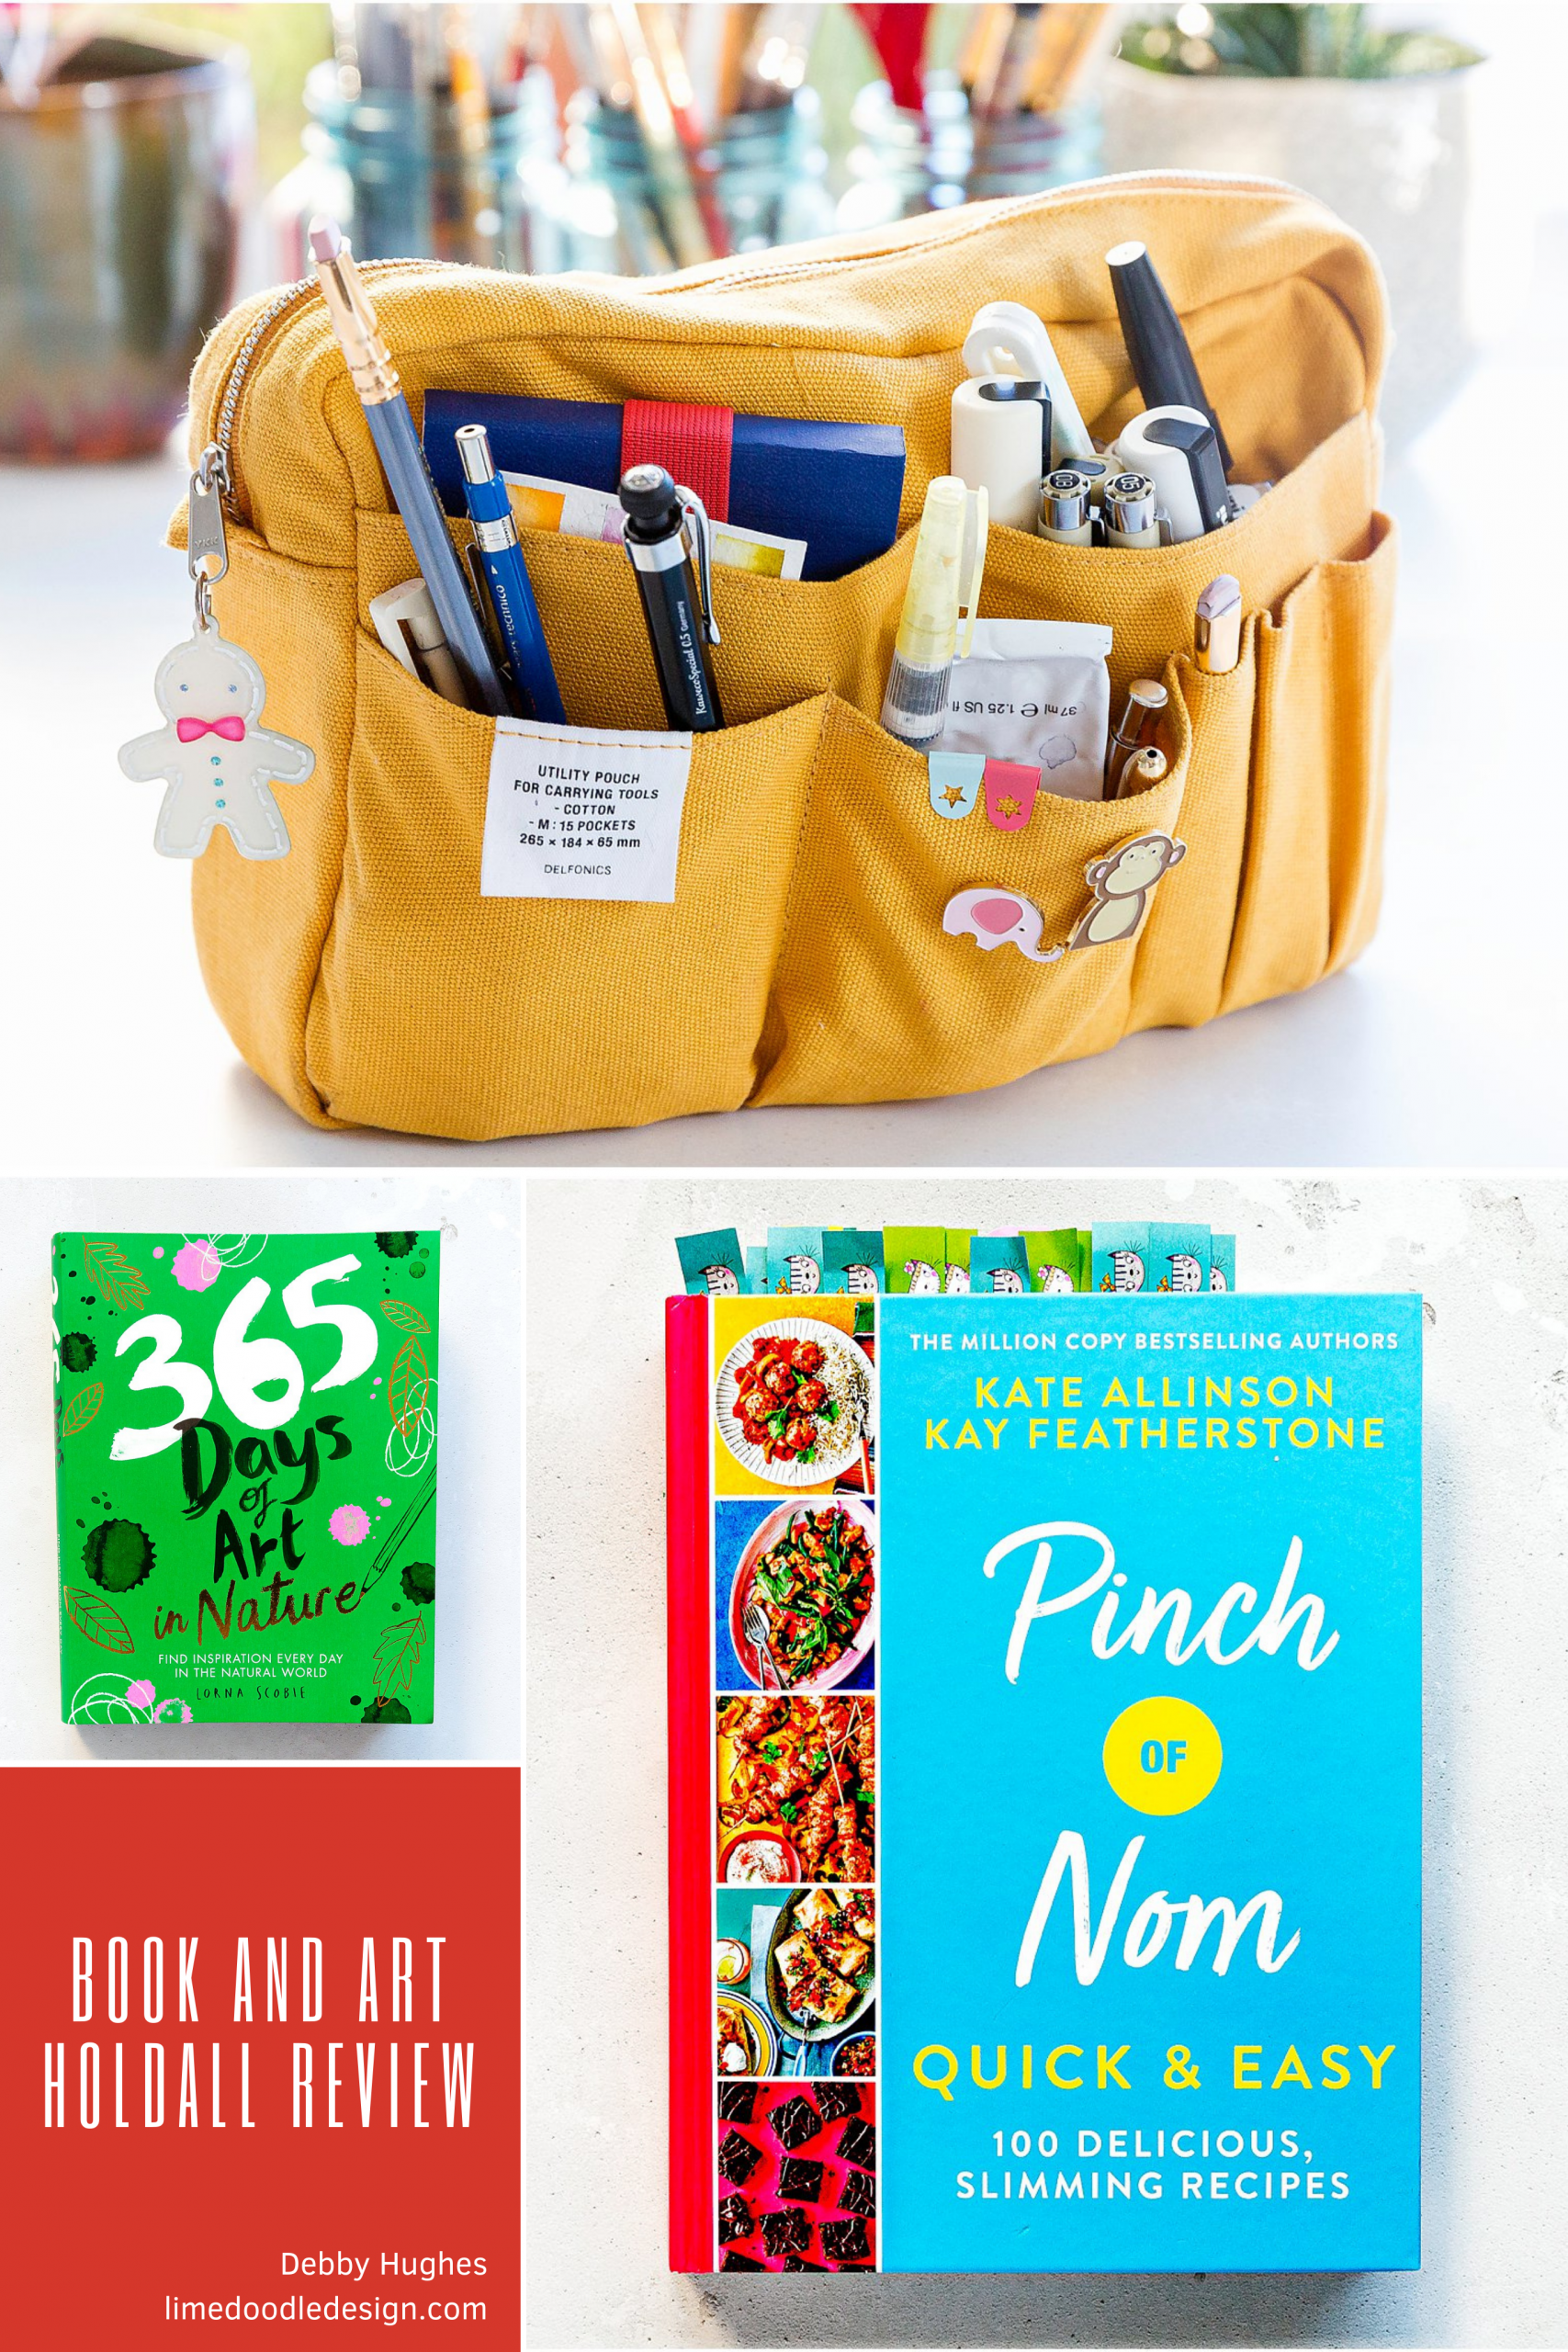 Pinch Of Nom, 365 Days Of Art In Nature and Delfonics Art Holdall video review by Debby Hughes #bookreview #365daysofart #pinchofnom #delfonics